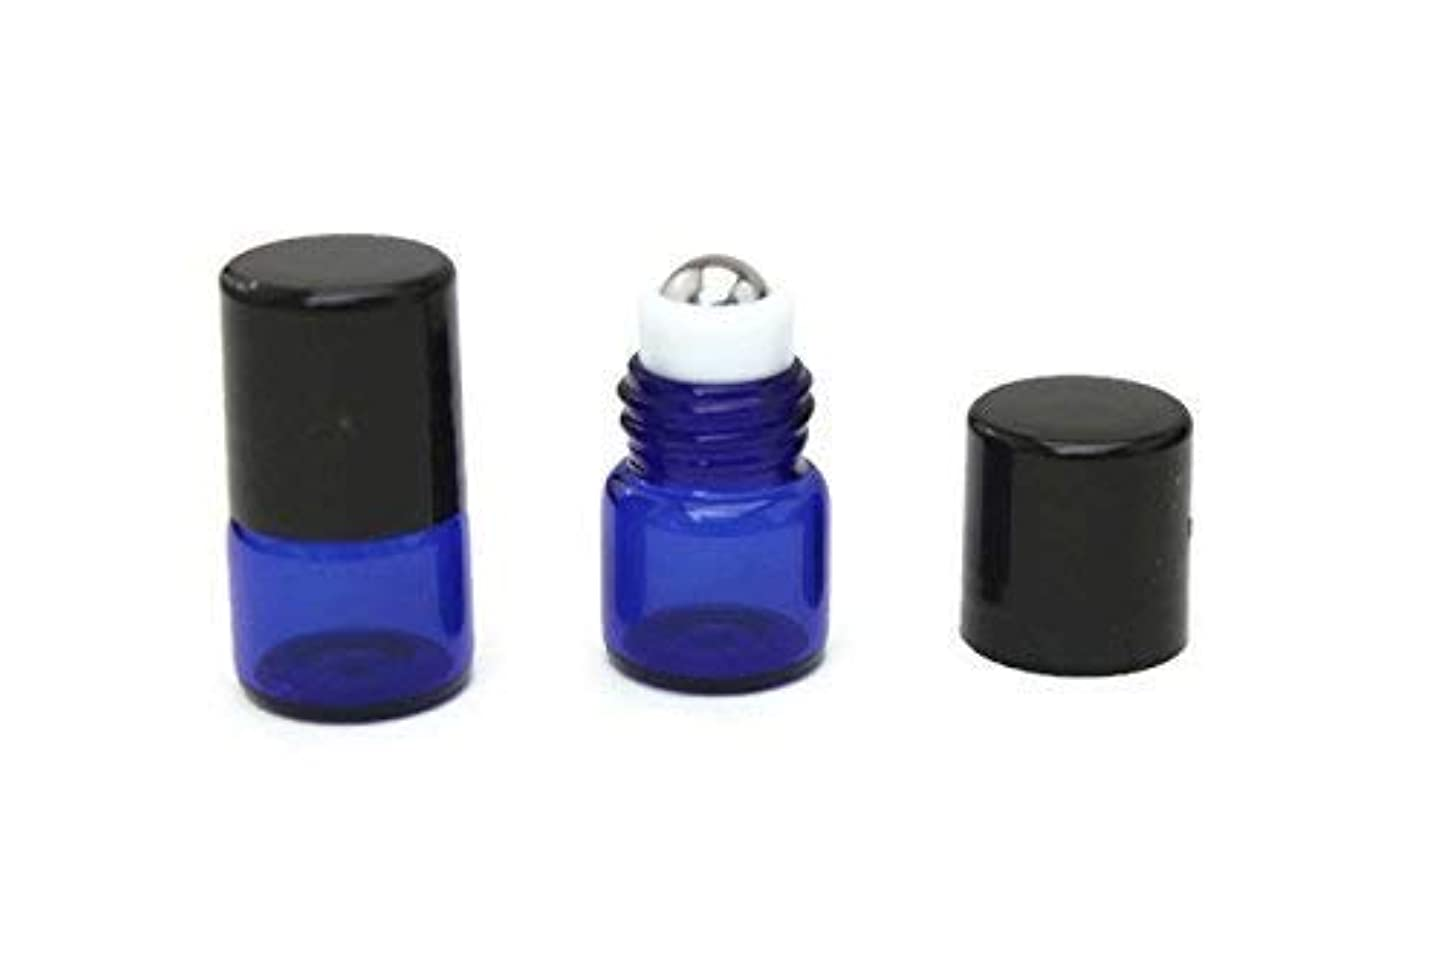 解説病気だと思う取り出すEssential Oil Roller Bottle 72-1 ml (1/4 Dram) COBALT BLUE Glass Micro Mini Roll-on Glass Bottles with Stainless...